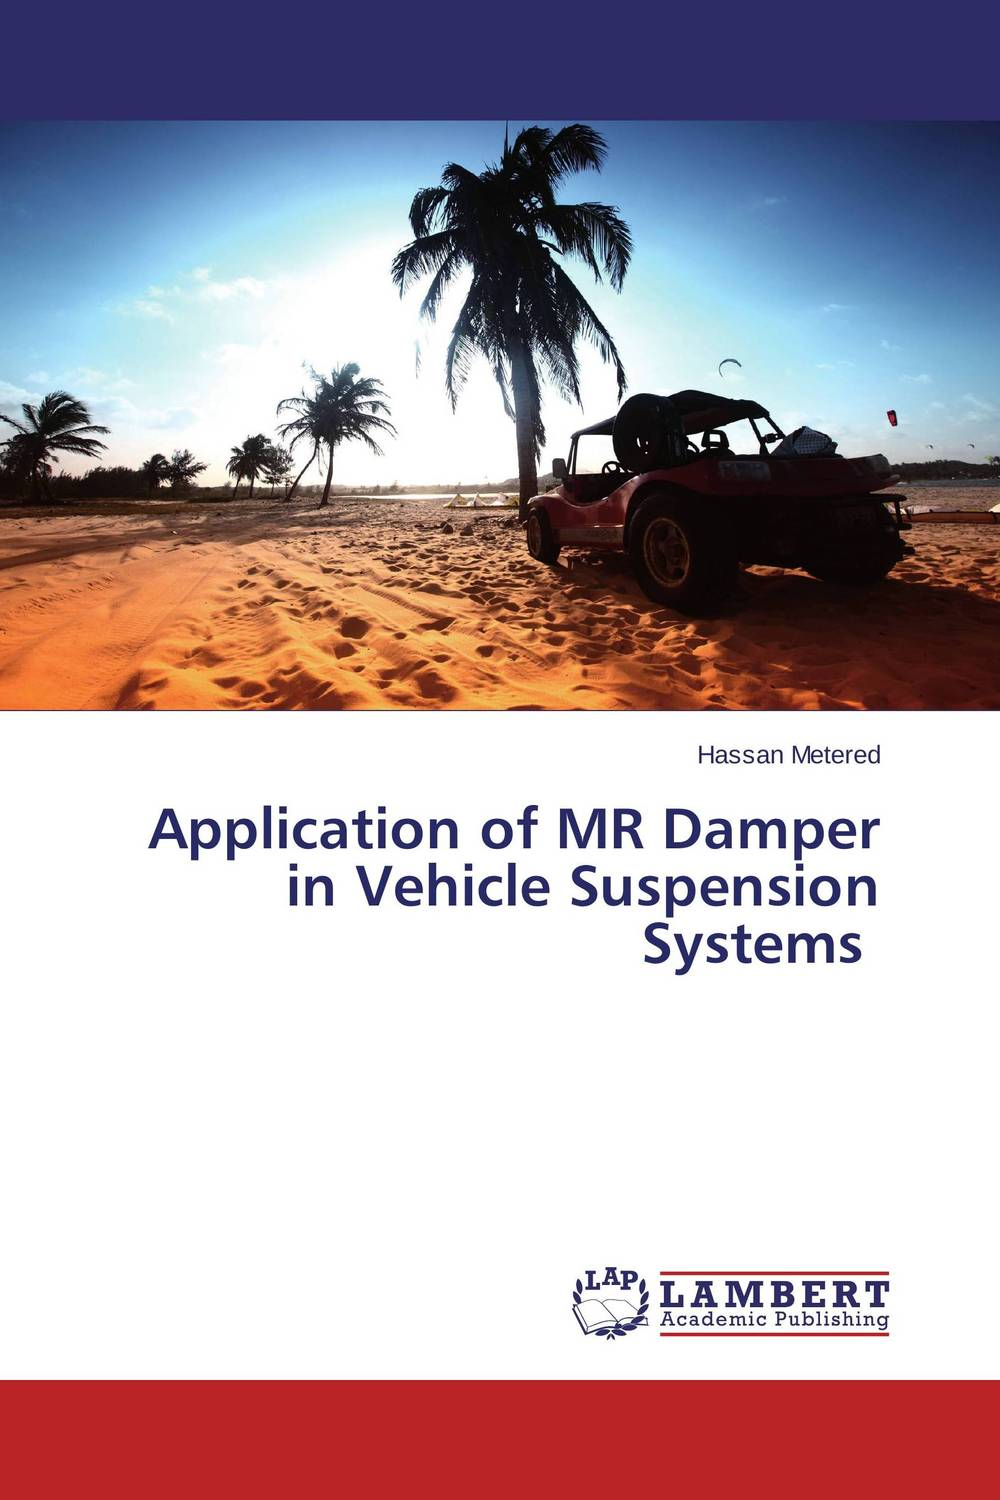 Application of MR Damper in Vehicle Suspension Systems steval ifr002v1 programmers development systems mr li